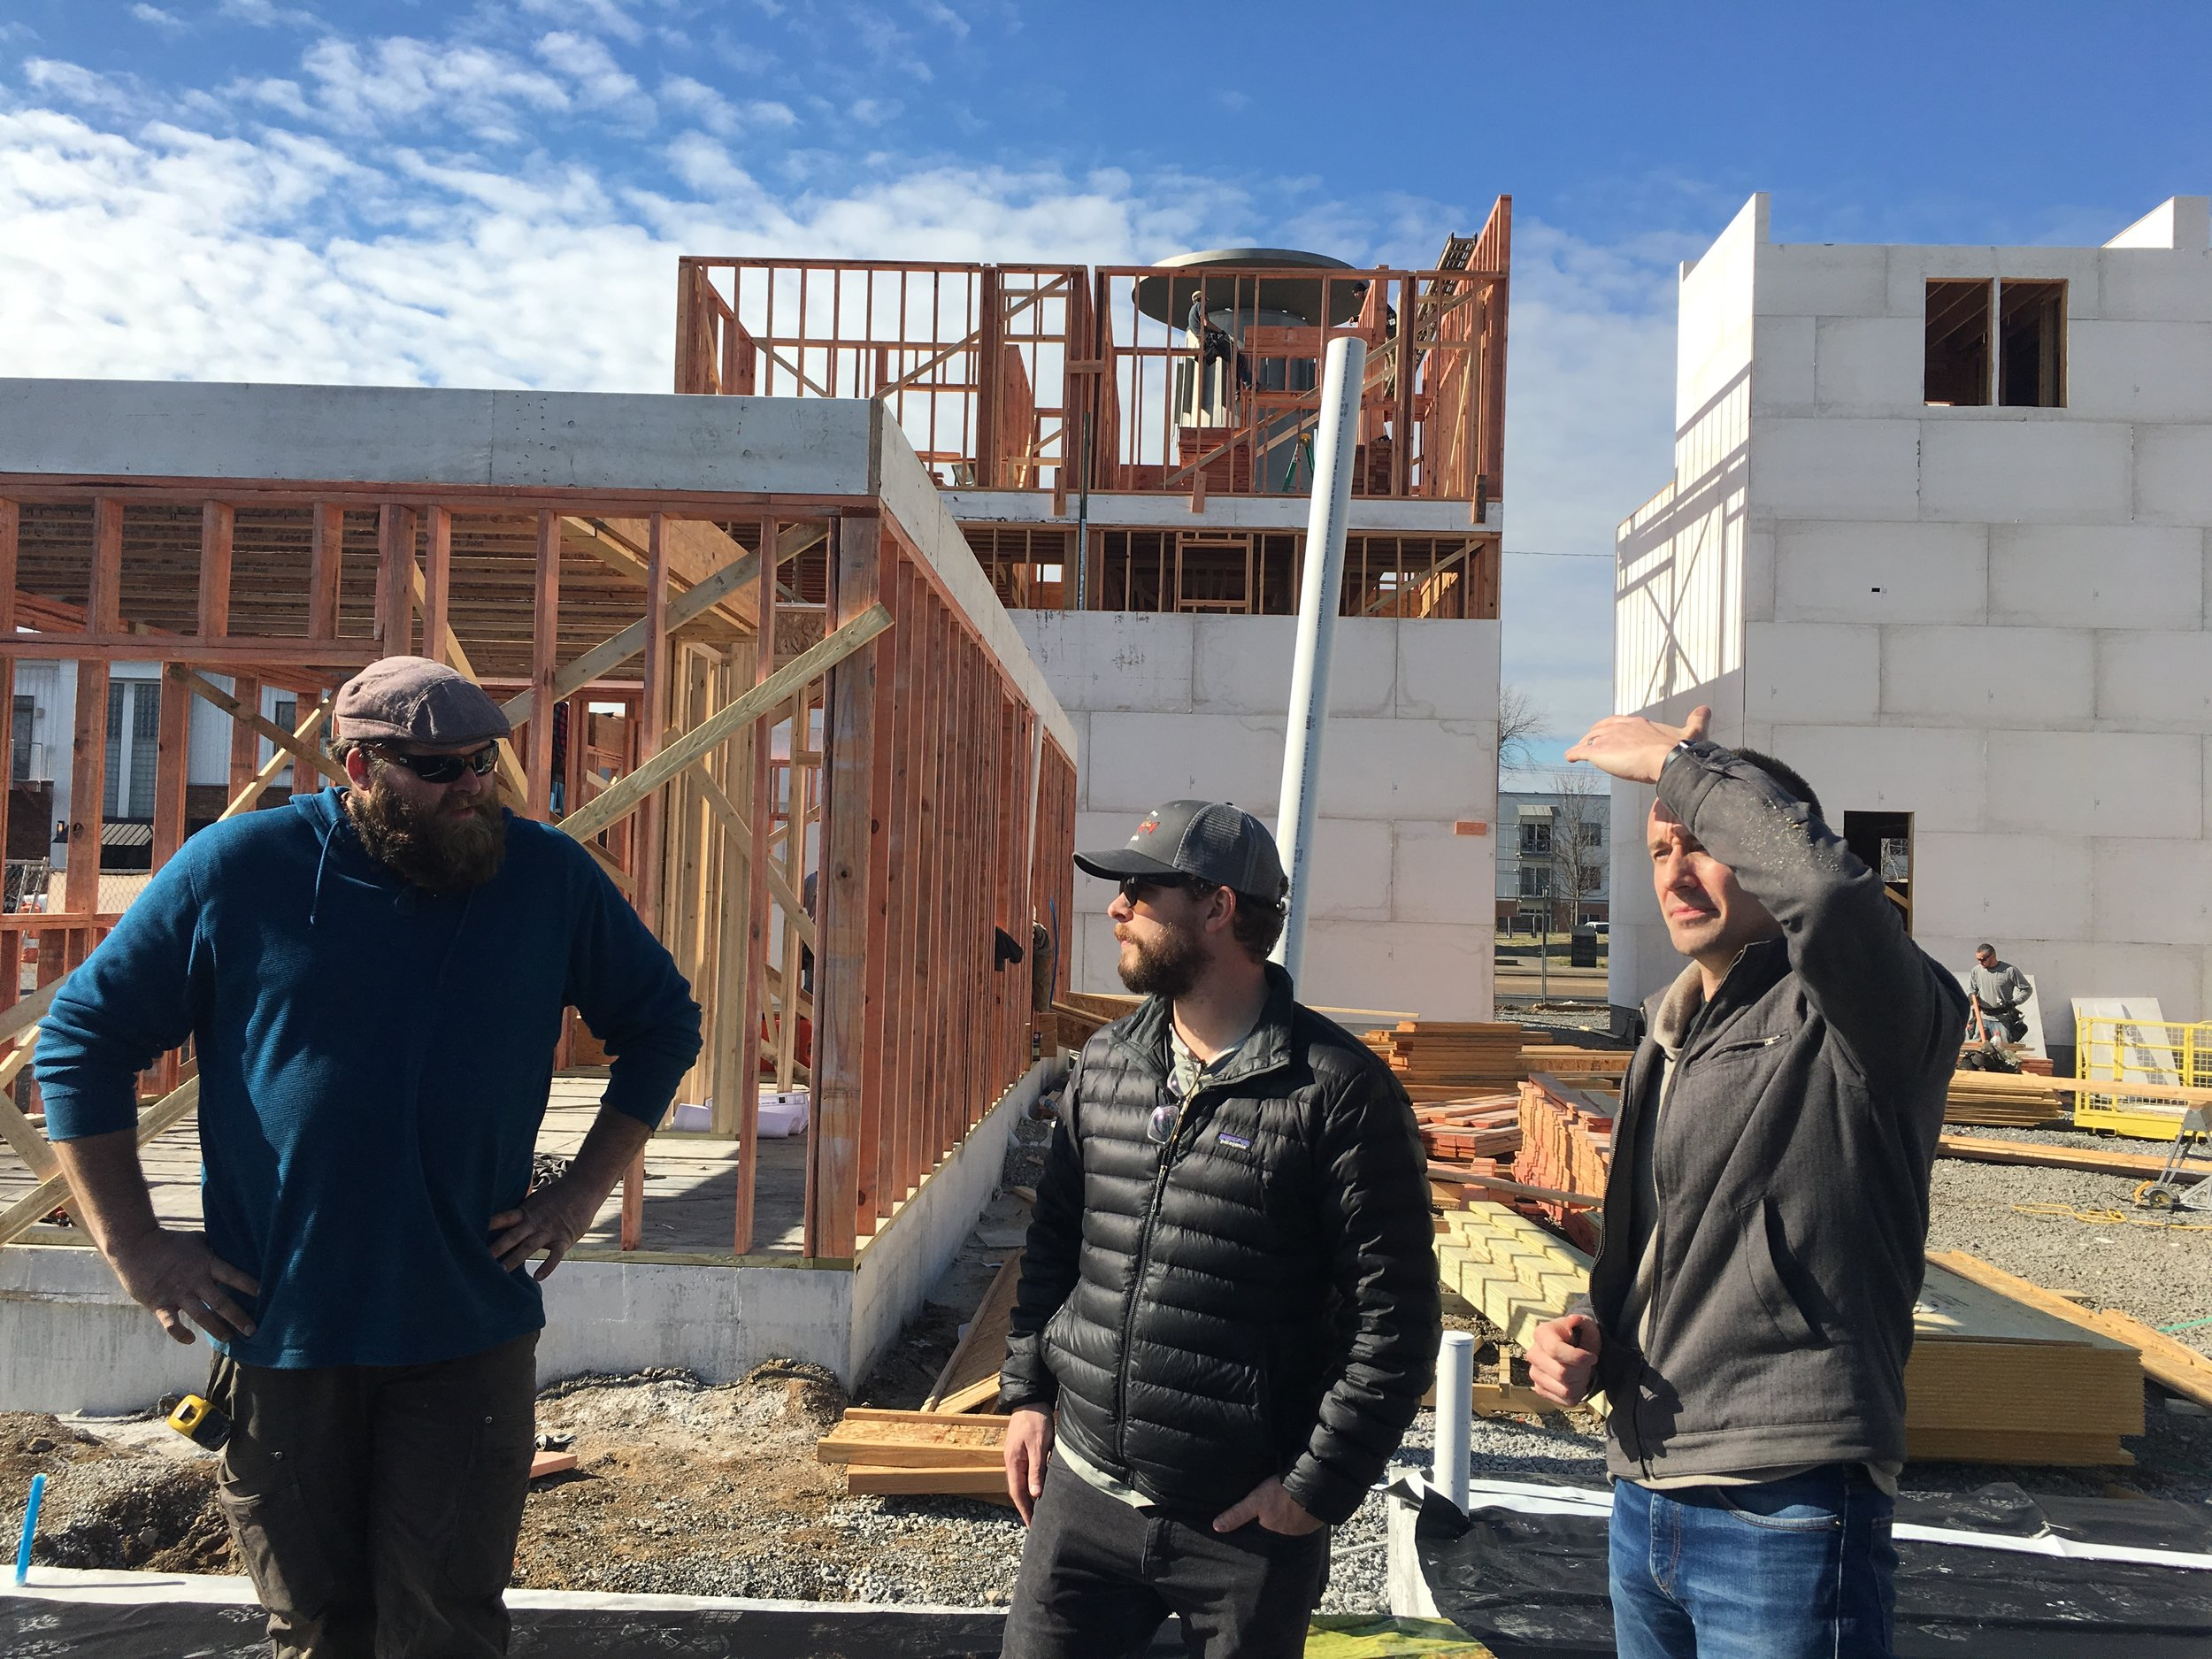 Thomas (center) and his site manager, Dan (left) discuss construction progress with Project Architect, Jared Hueter (right)